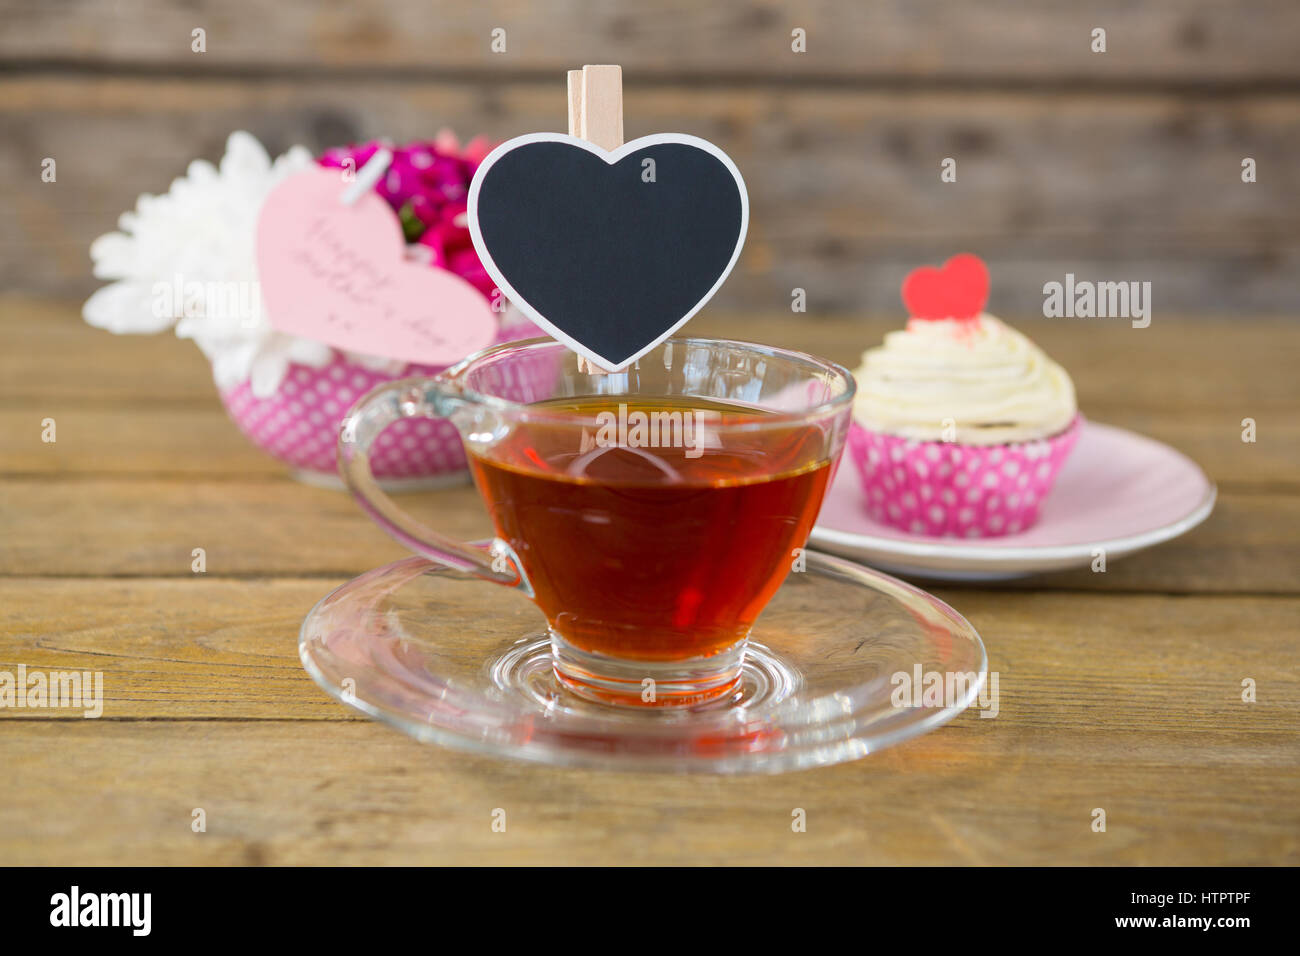 Alamy & Cupcake tea flower vase and happy mothers day greetings ...